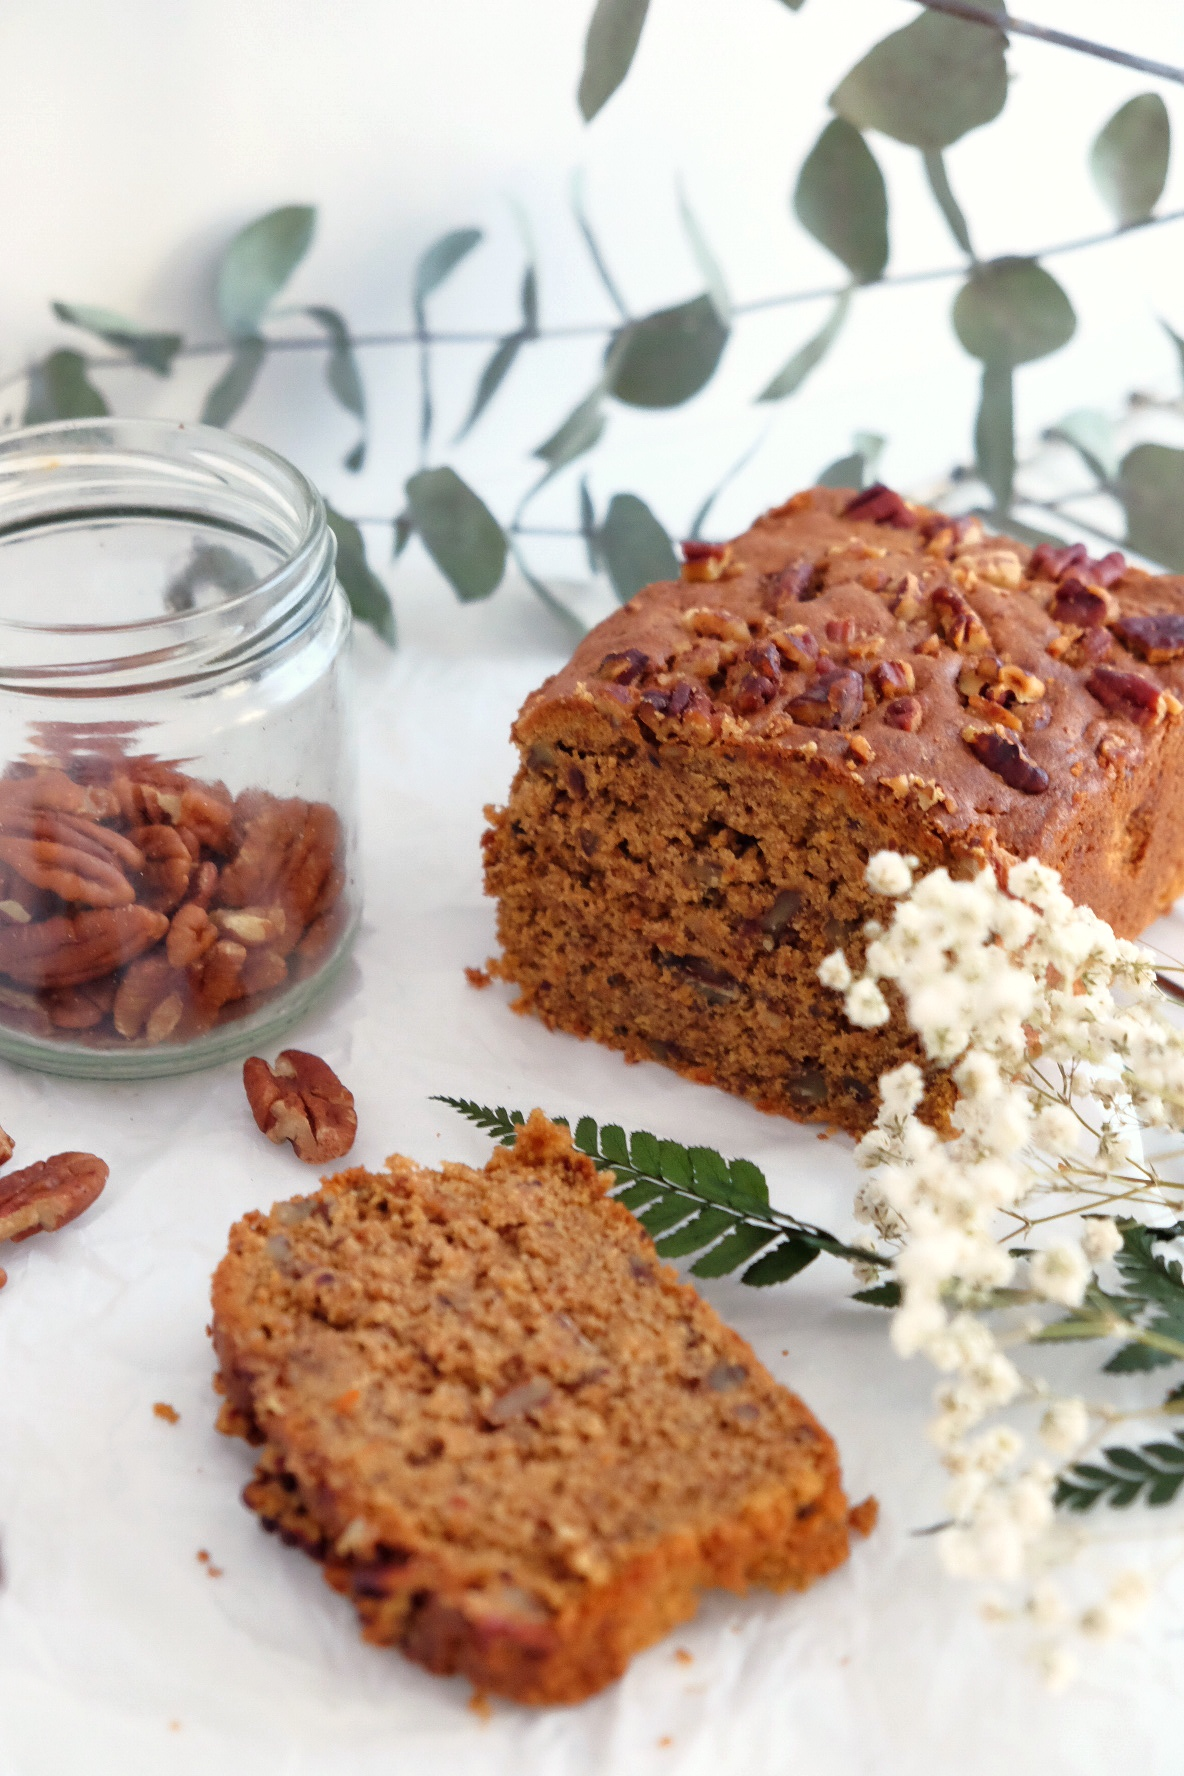 Delicious carrot cake GLUTEN-FREE